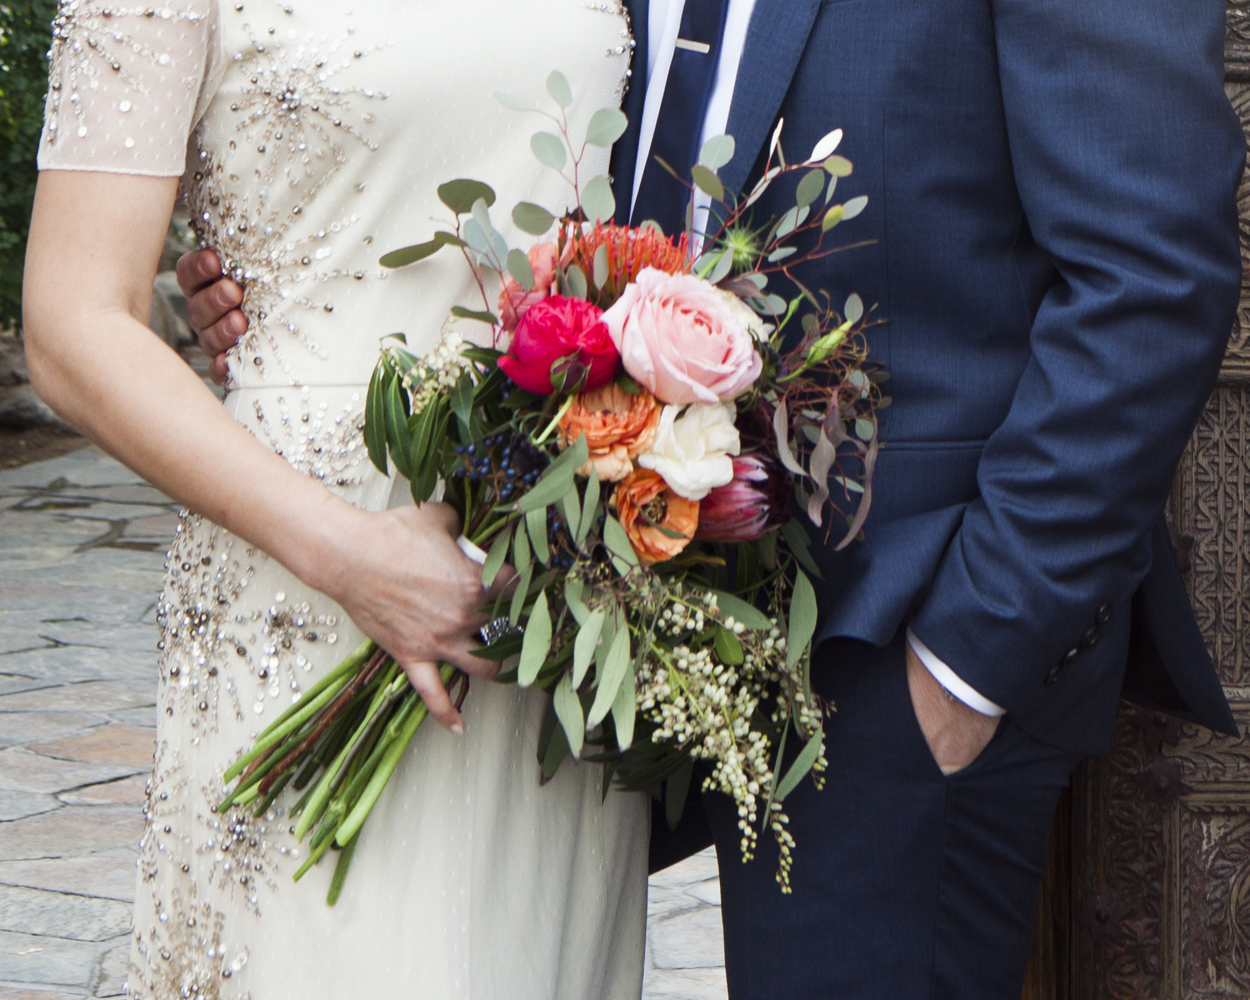 How To Make A Bare Stem Wedding Bouquet Rustic Wedding Chic